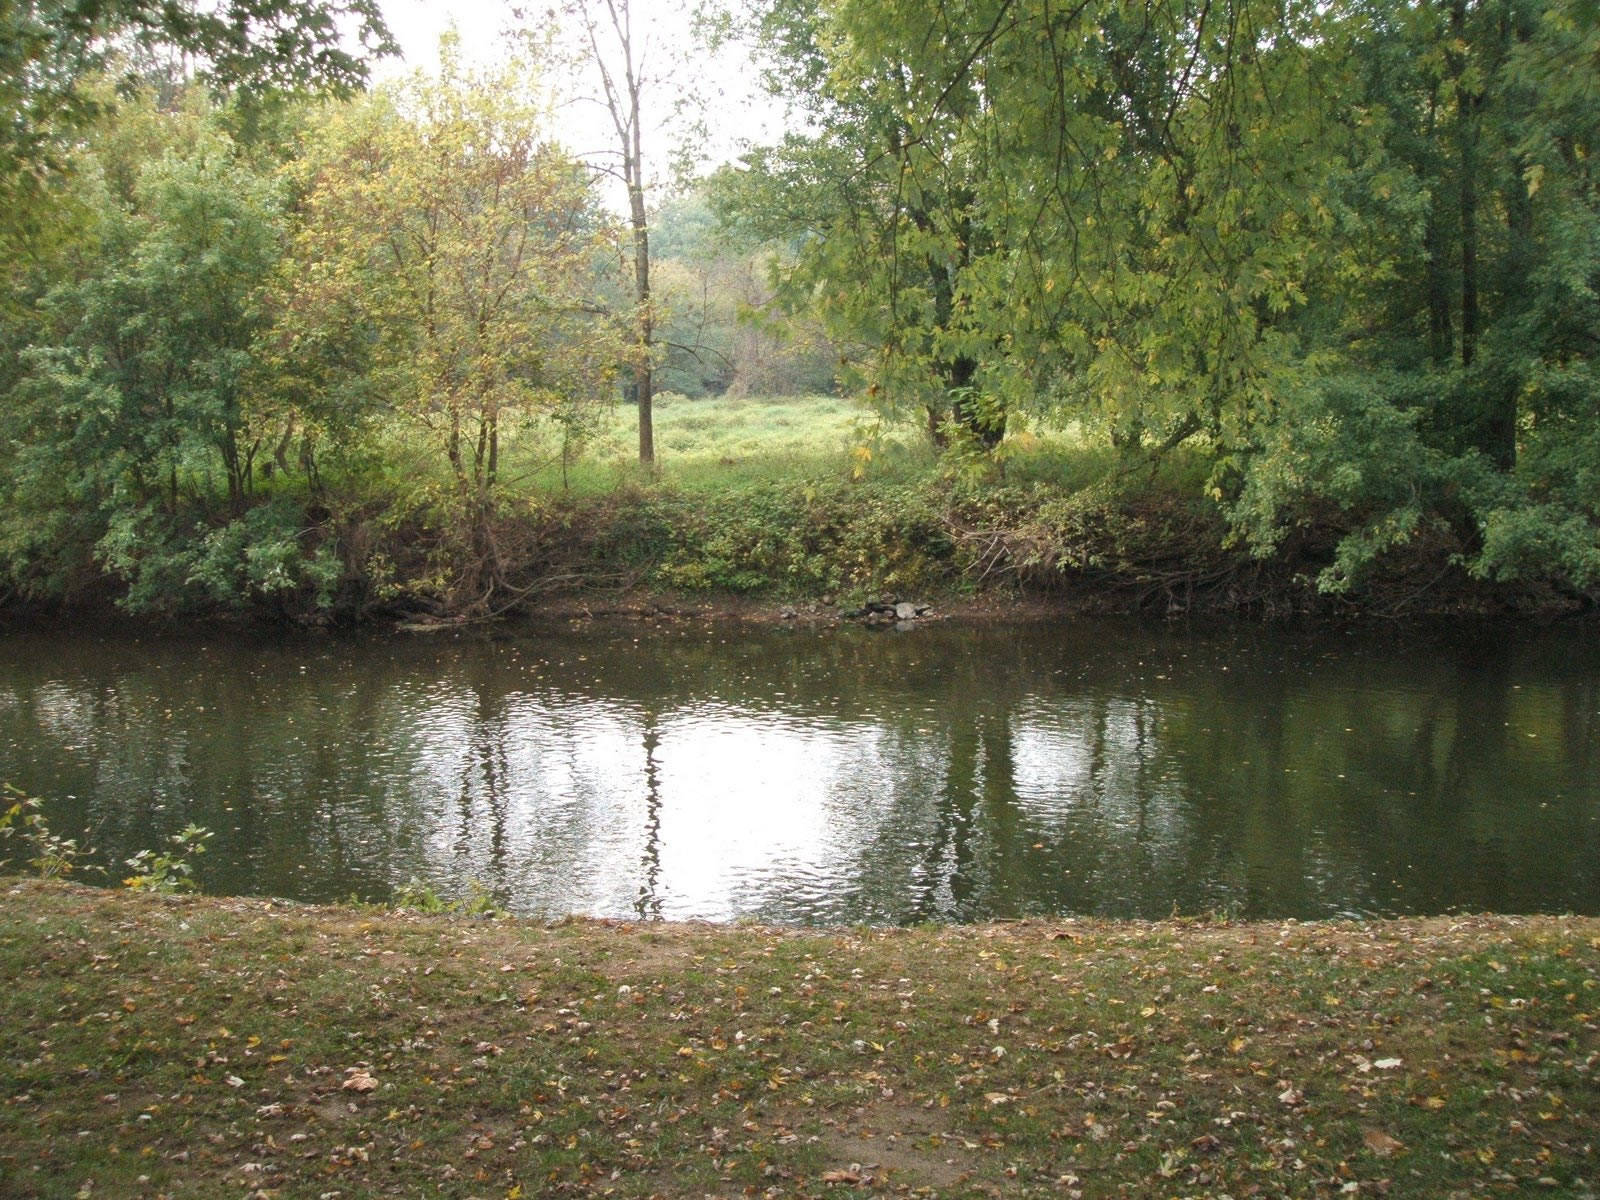 Brandywine River Bank